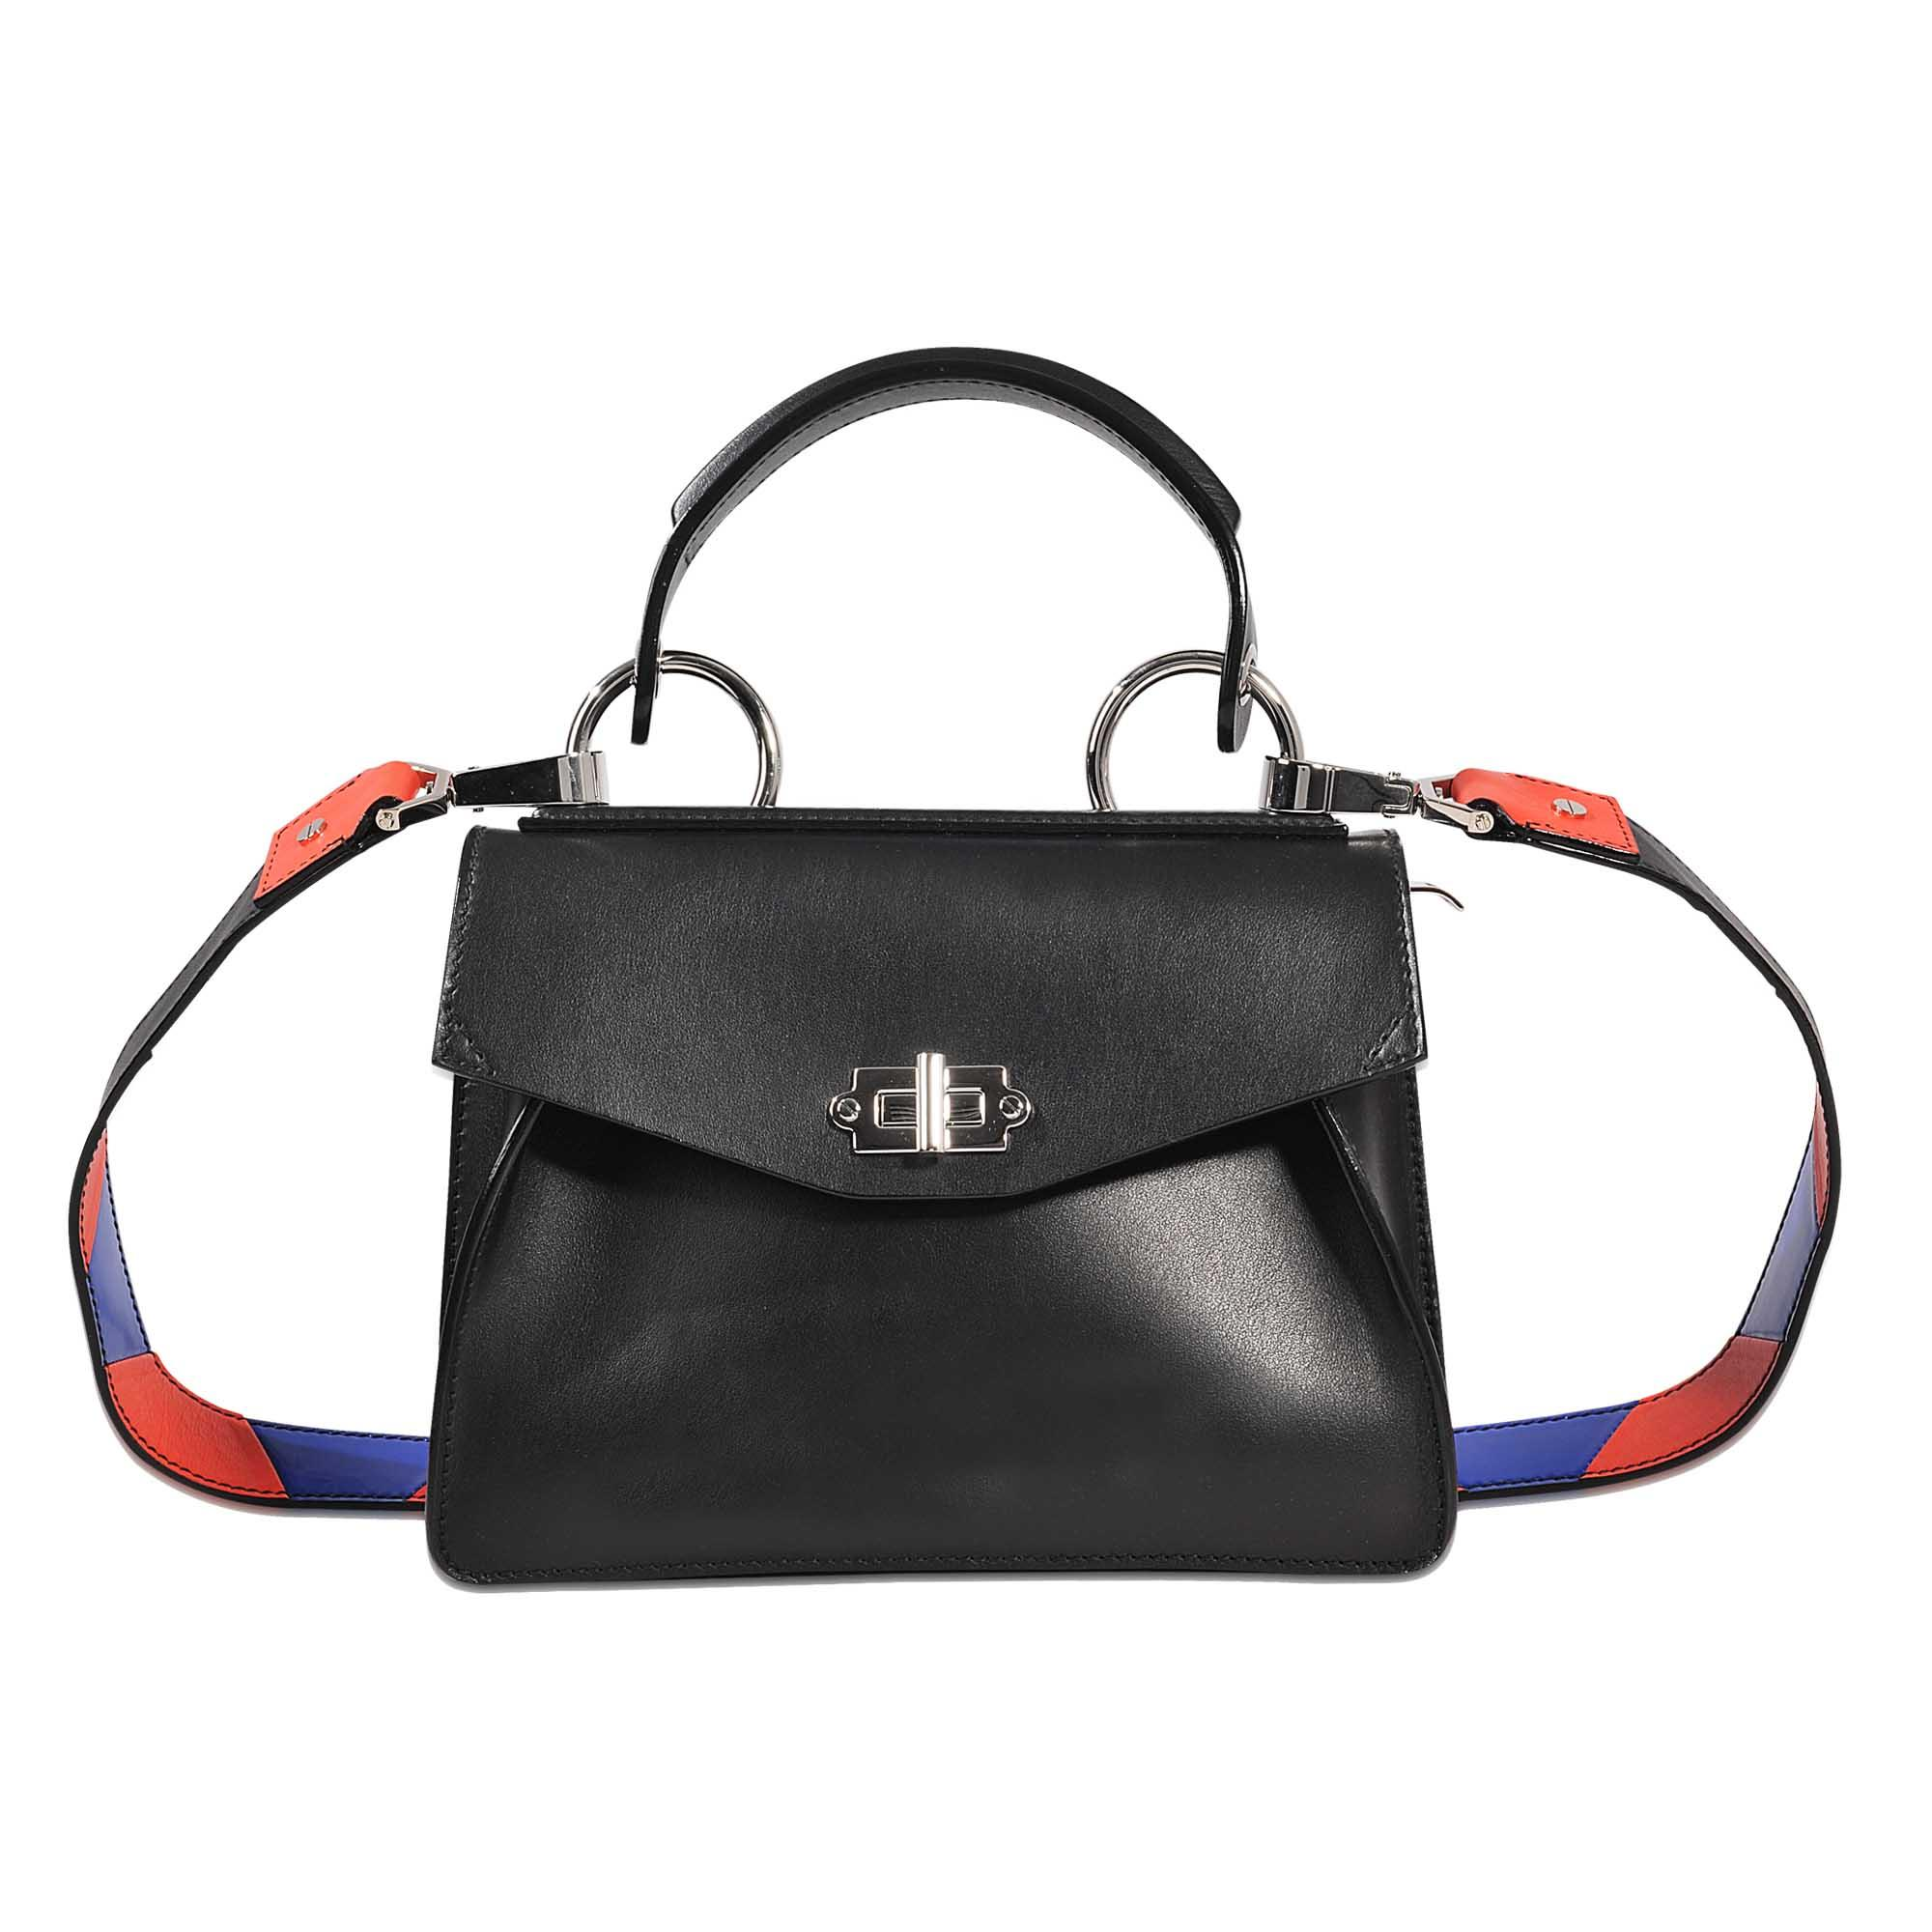 Hot Sale Affordable Cheap Price Medium Hava Top Handle Smooth Leather bag Proenza Schouler Free Shipping Hot Sale Sale Finishline HskhXddc1